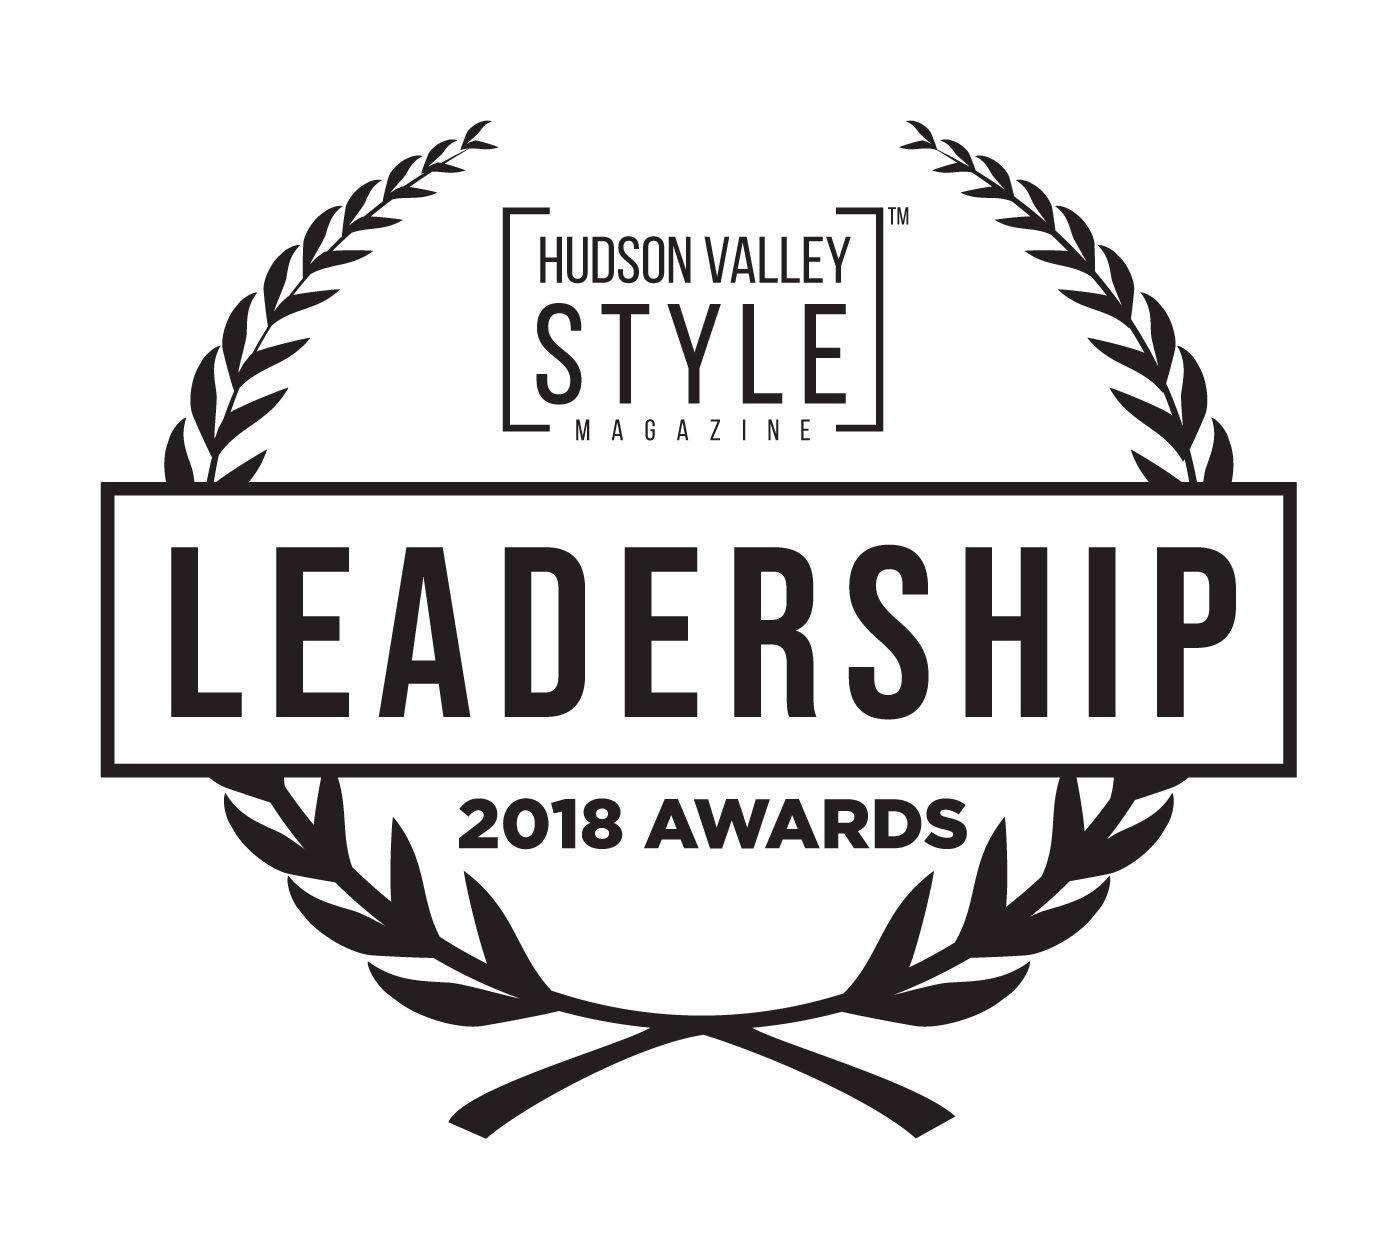 Hudson Valley Style Magazine Awards: Leadership